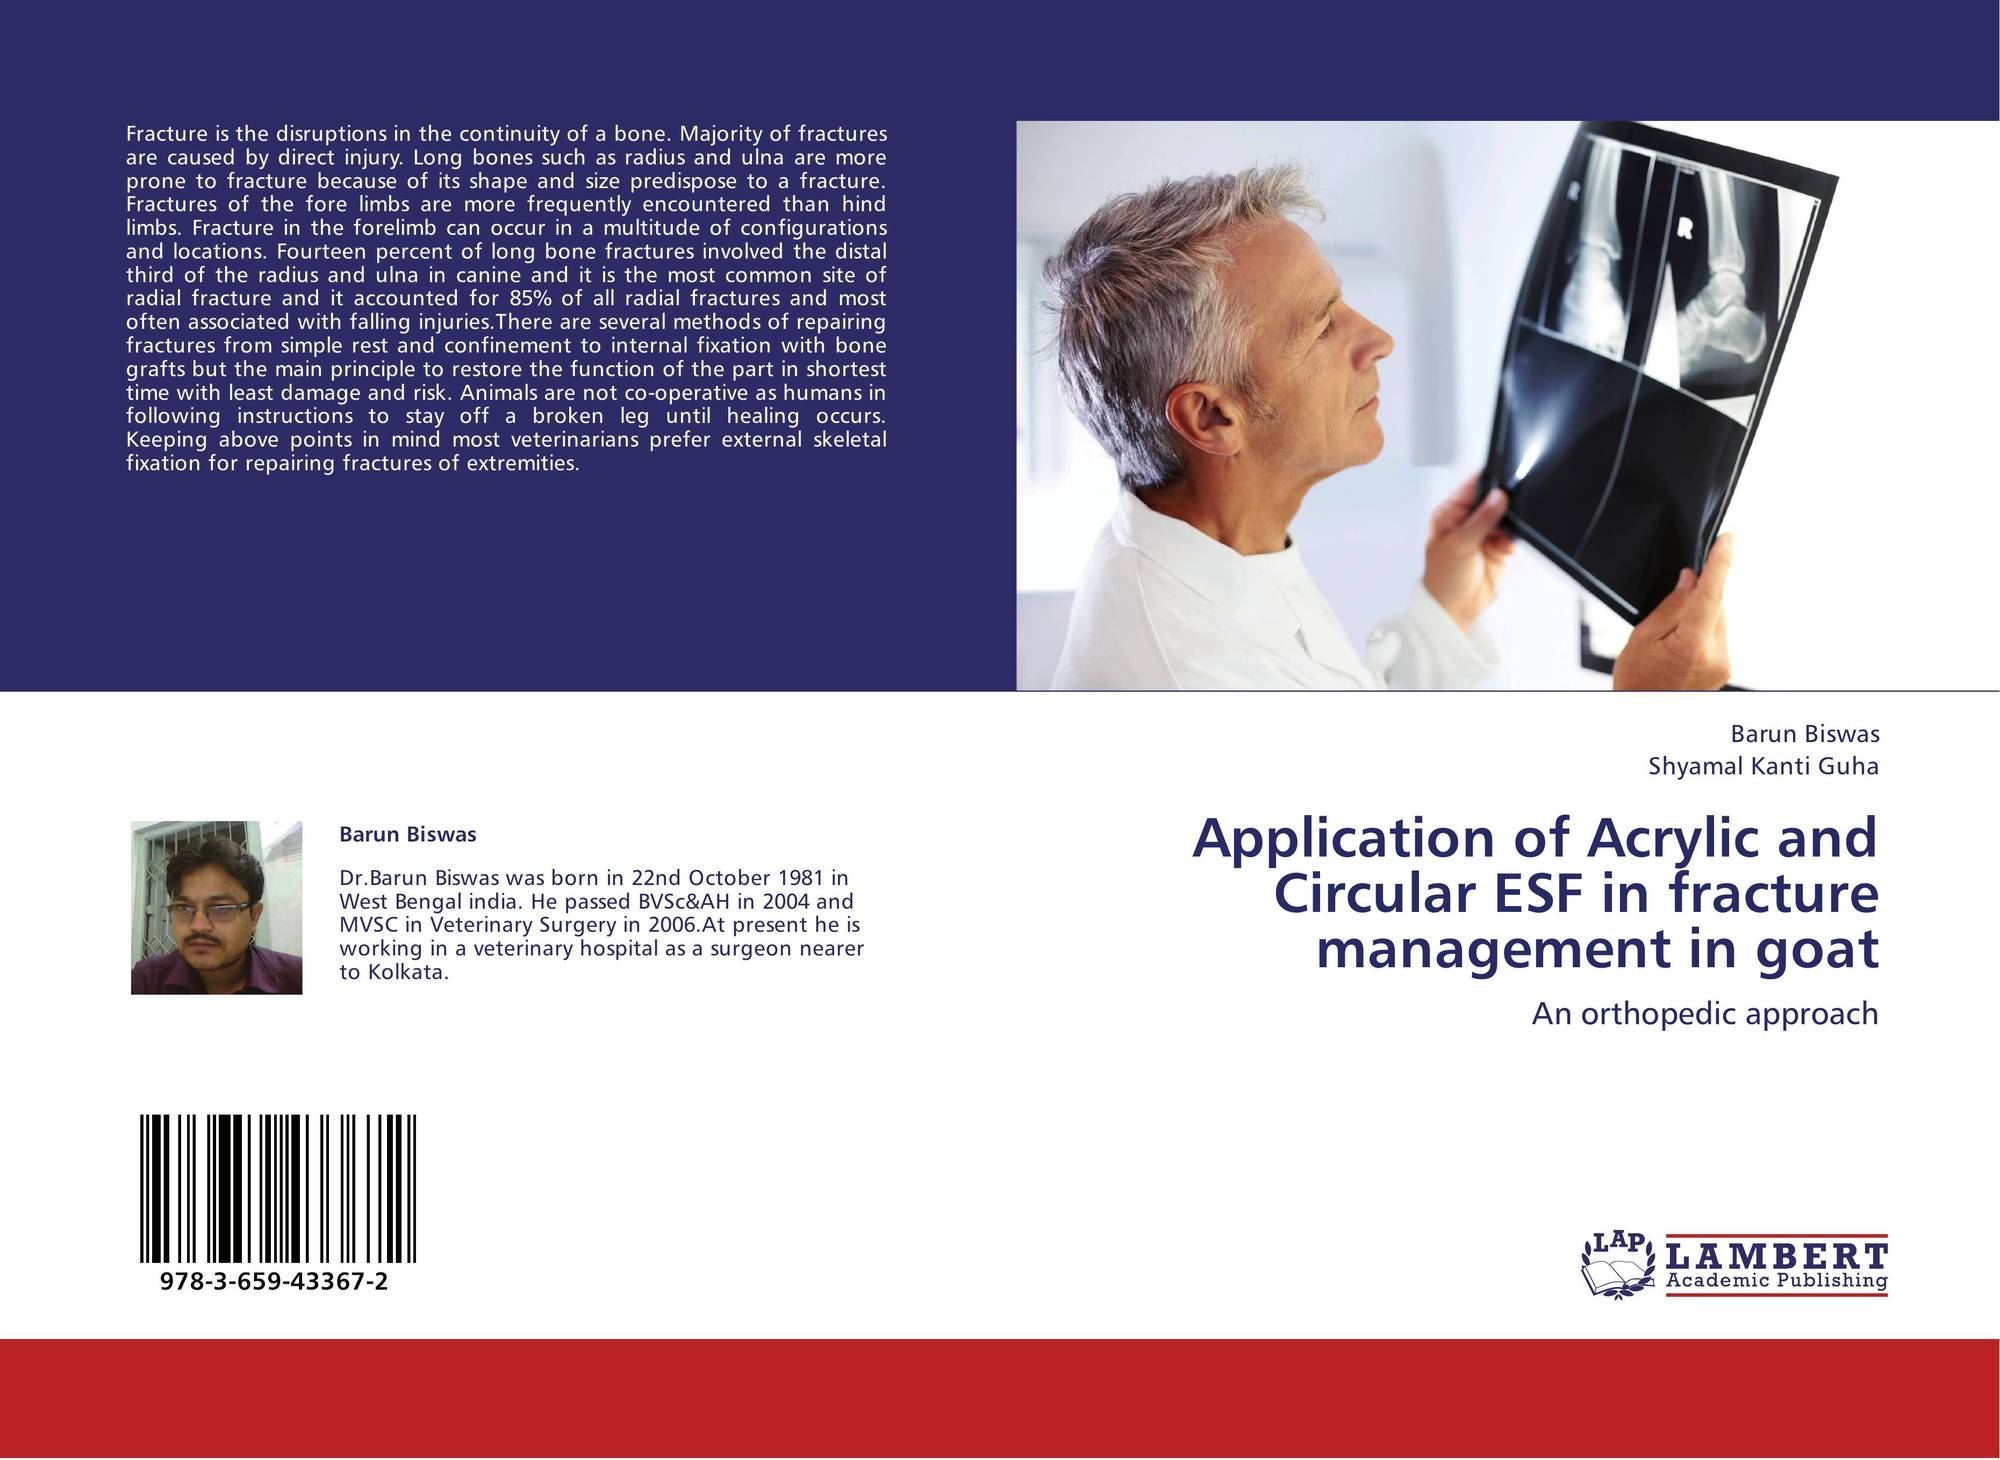 Application of Acrylic and Circular ESF in fracture management in